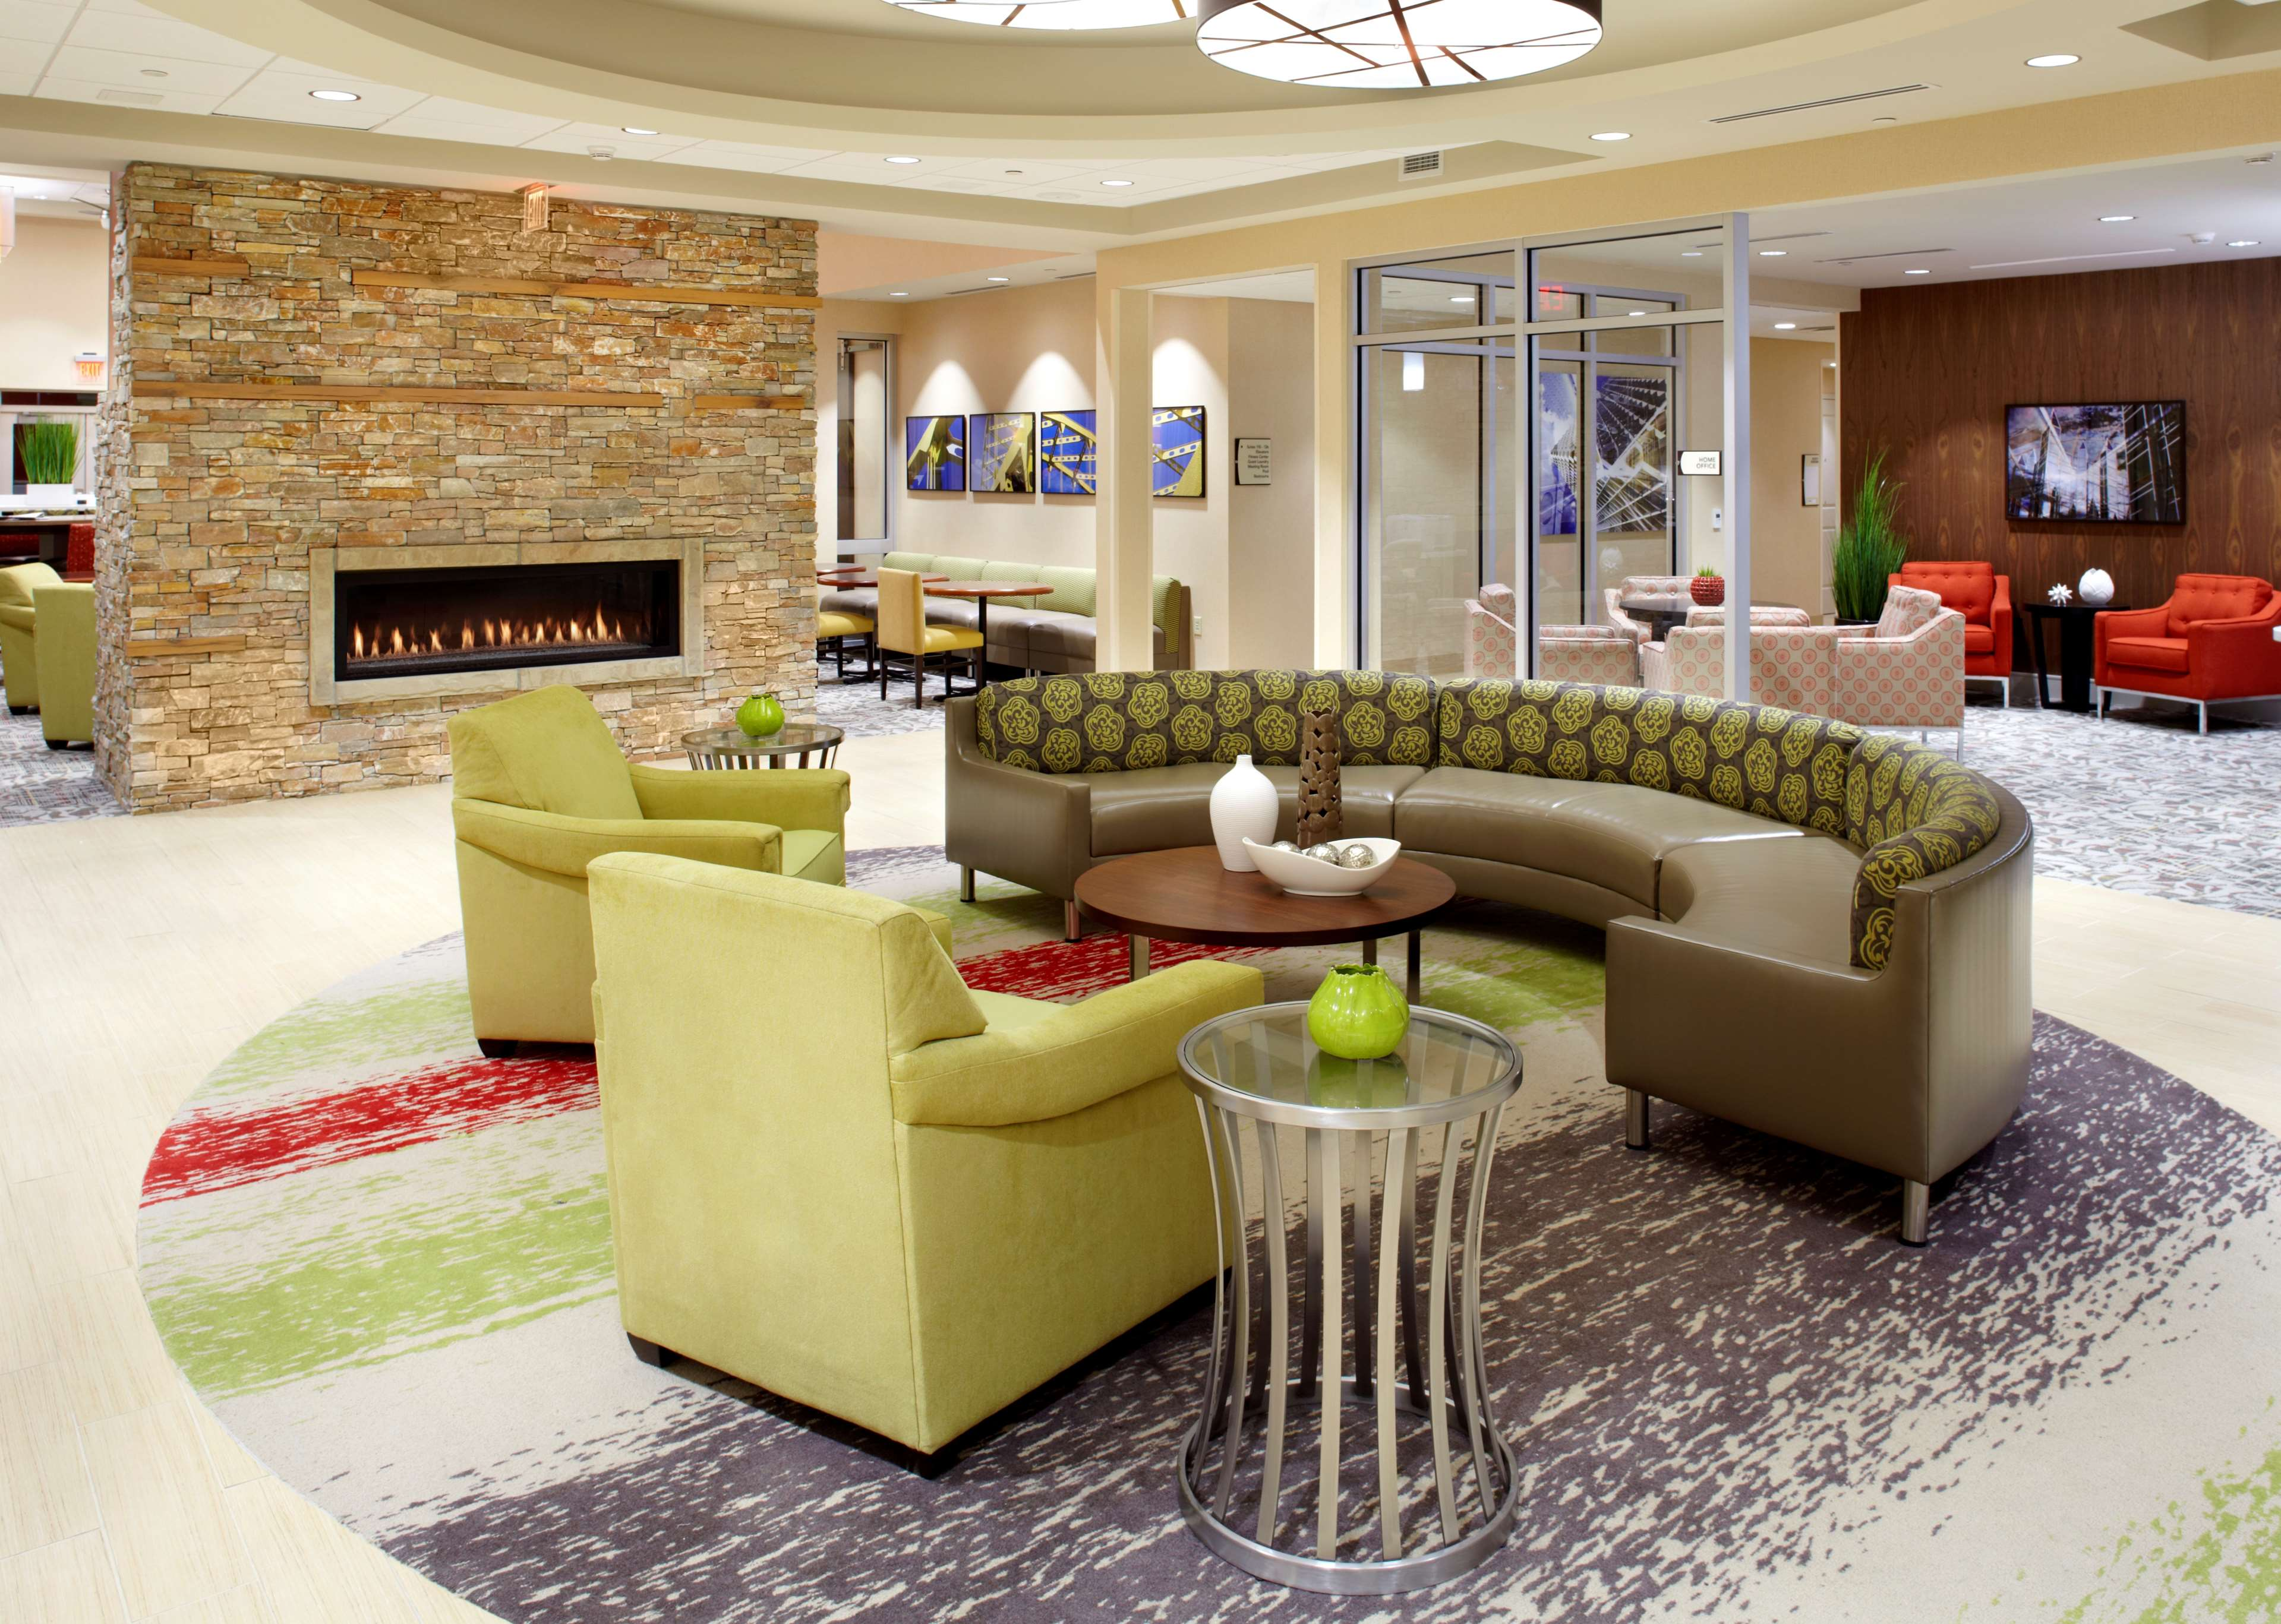 Homewood Suites by Hilton Pittsburgh Airport Robinson Mall Area PA image 5